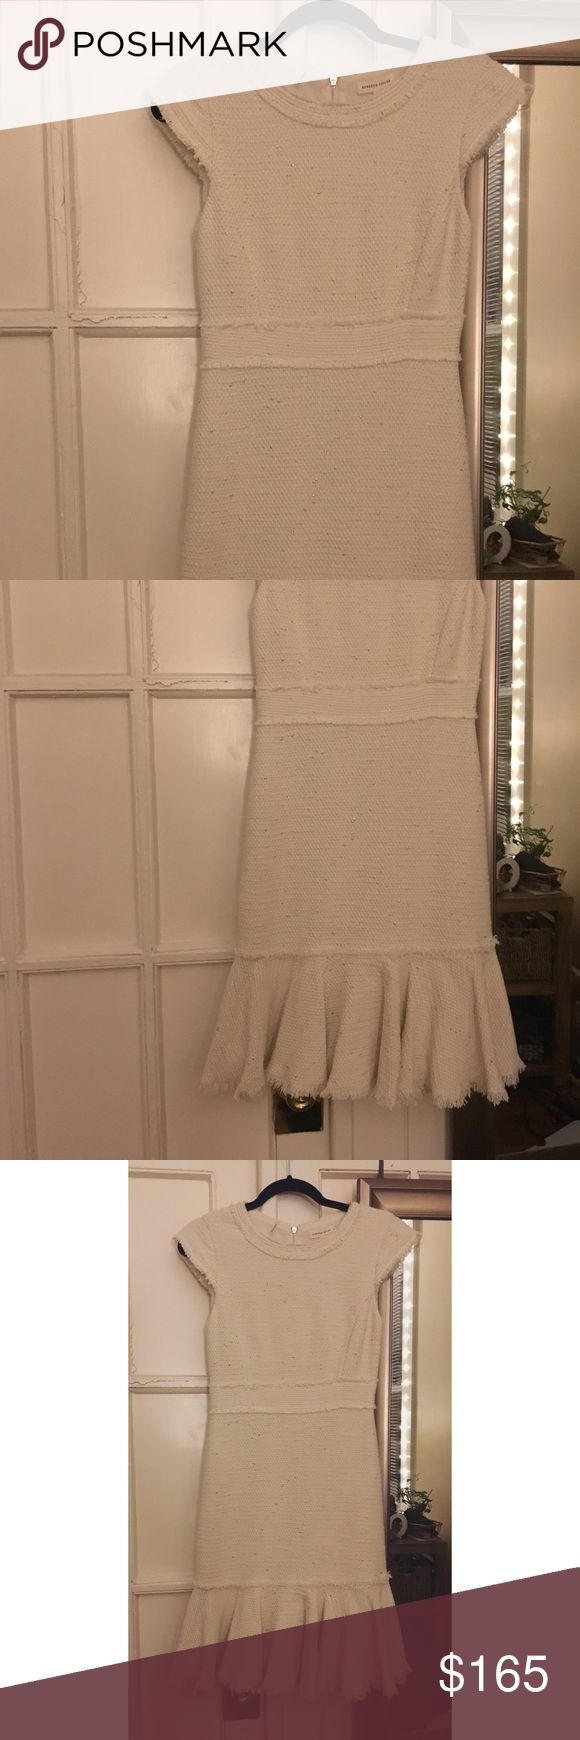 NWT Rebecca Taylor Dress Brand new with tags still on rebecca taylor white tweed dress. The color is amazing and the fabric is soft with a little stretch. Super flattering Rebecca Taylor Dresses